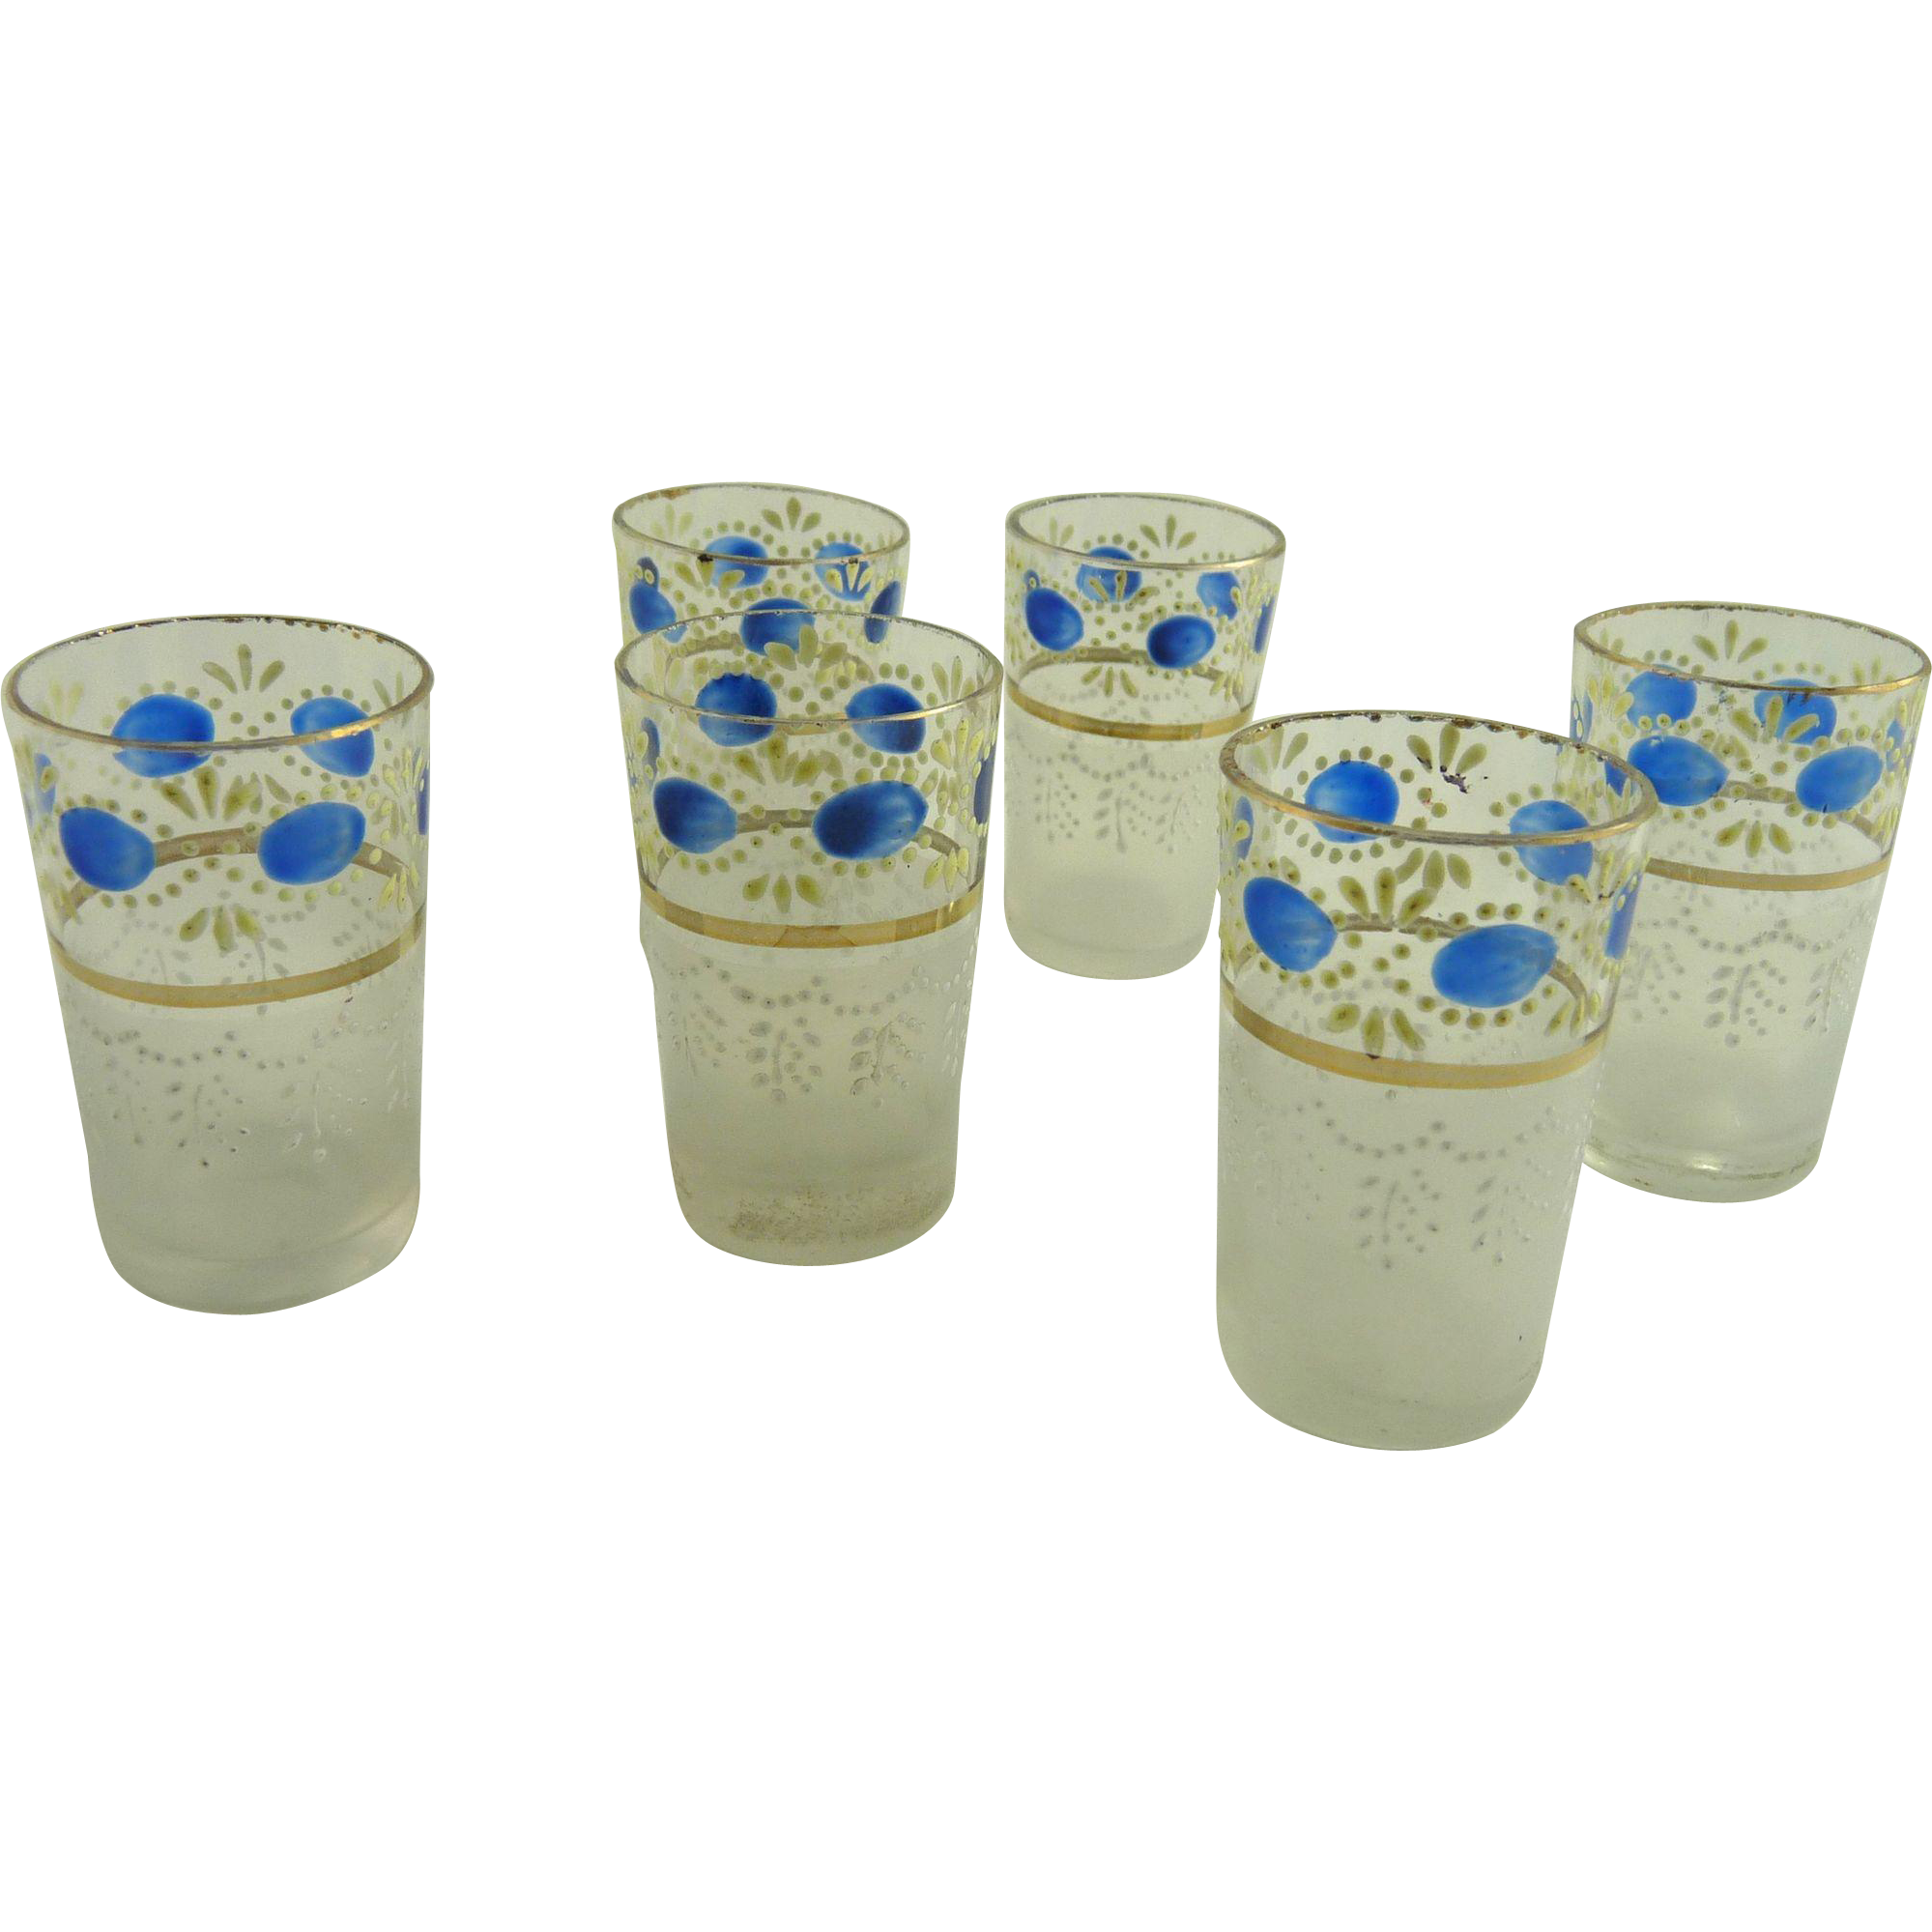 Set of Six Vintage Aperitif Cordial or Shot Glasses Enamel Decorated